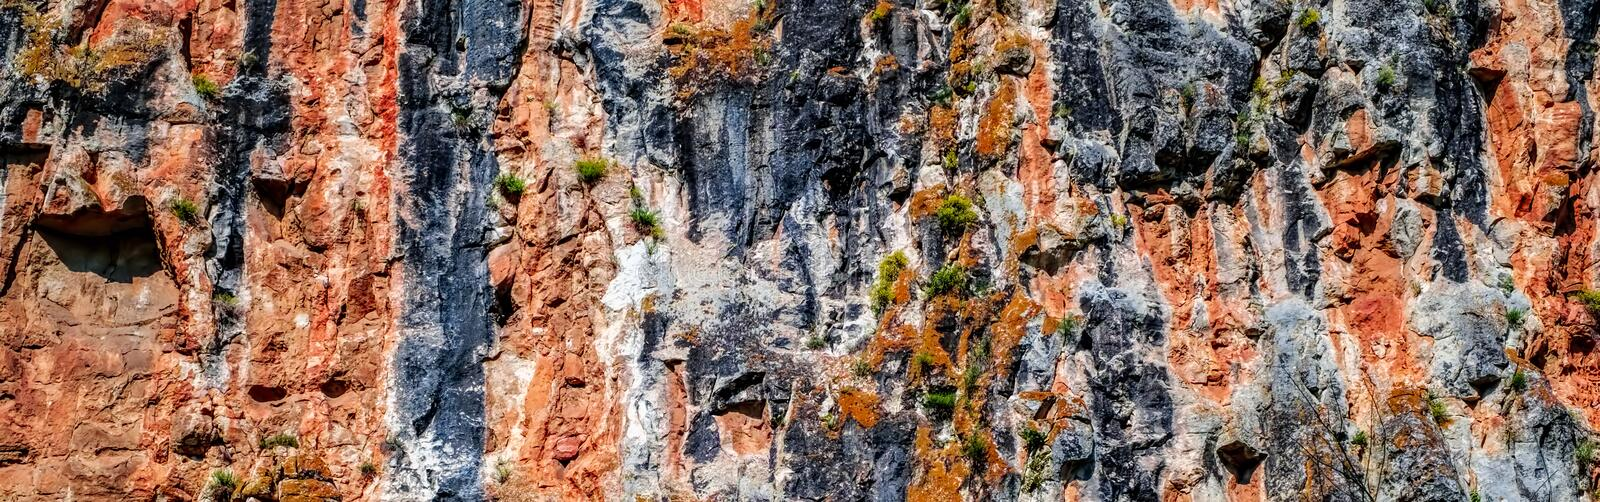 Red cliff wall with clusters of greenery. royalty free stock images